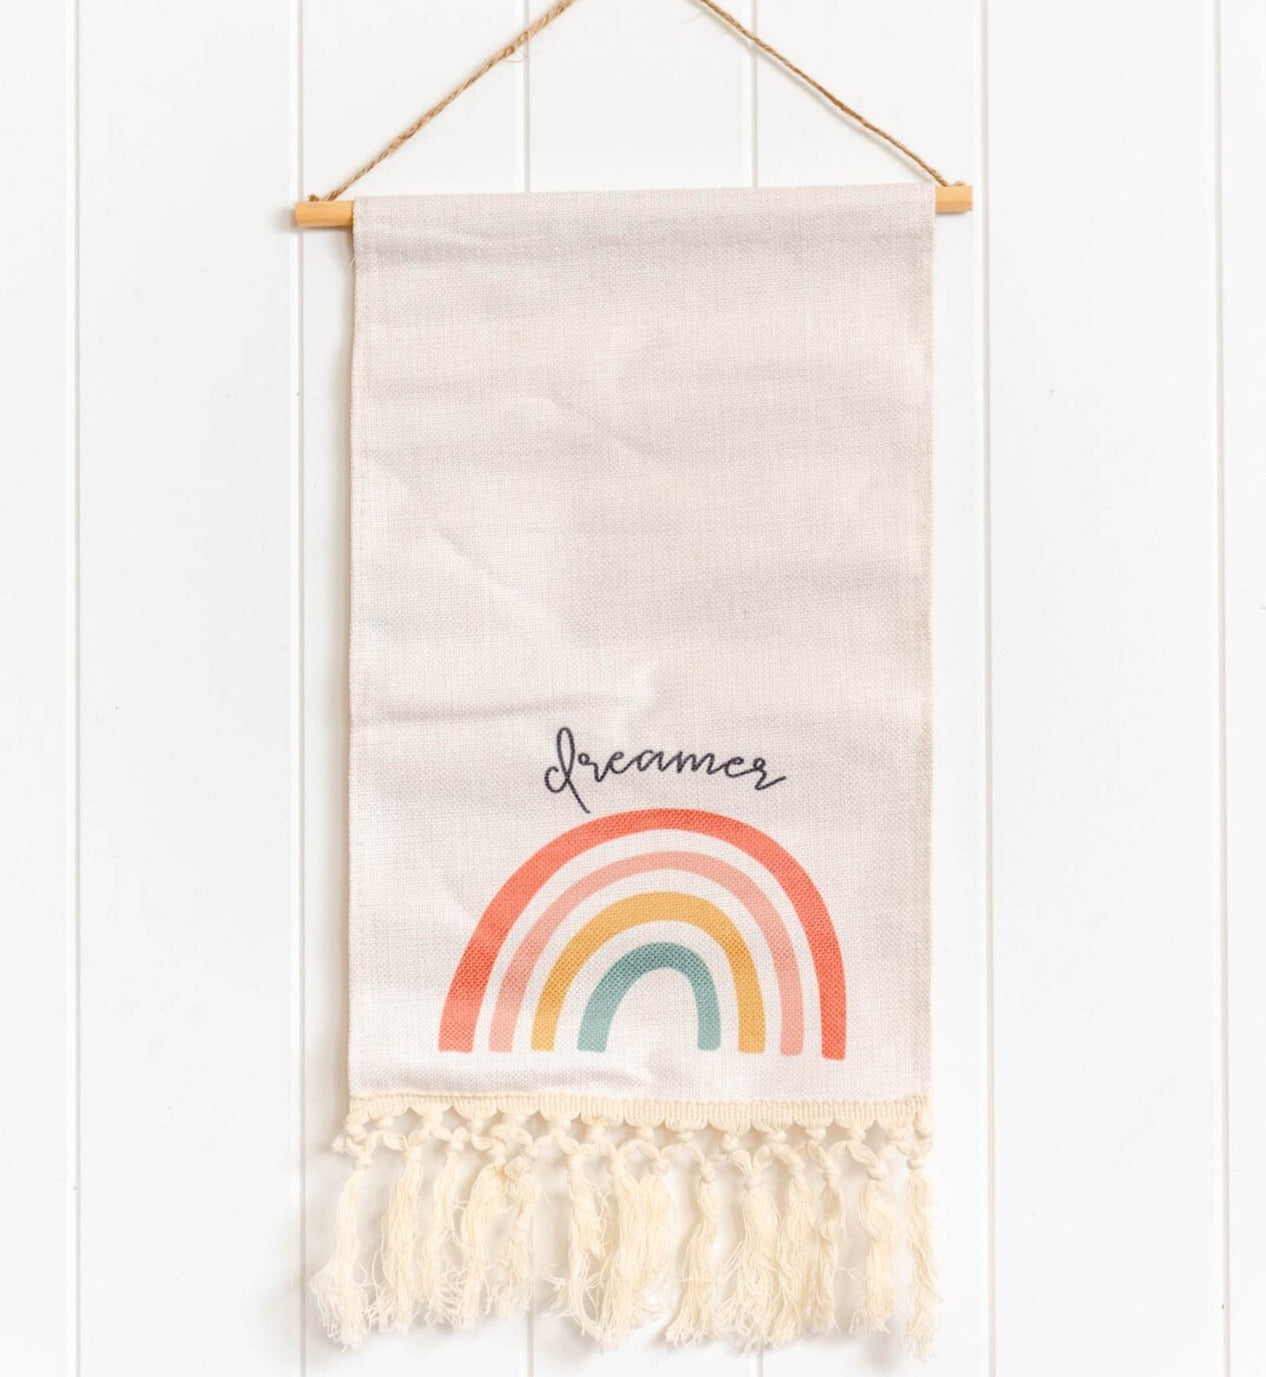 Dreamer rainbow macrame scroll banner